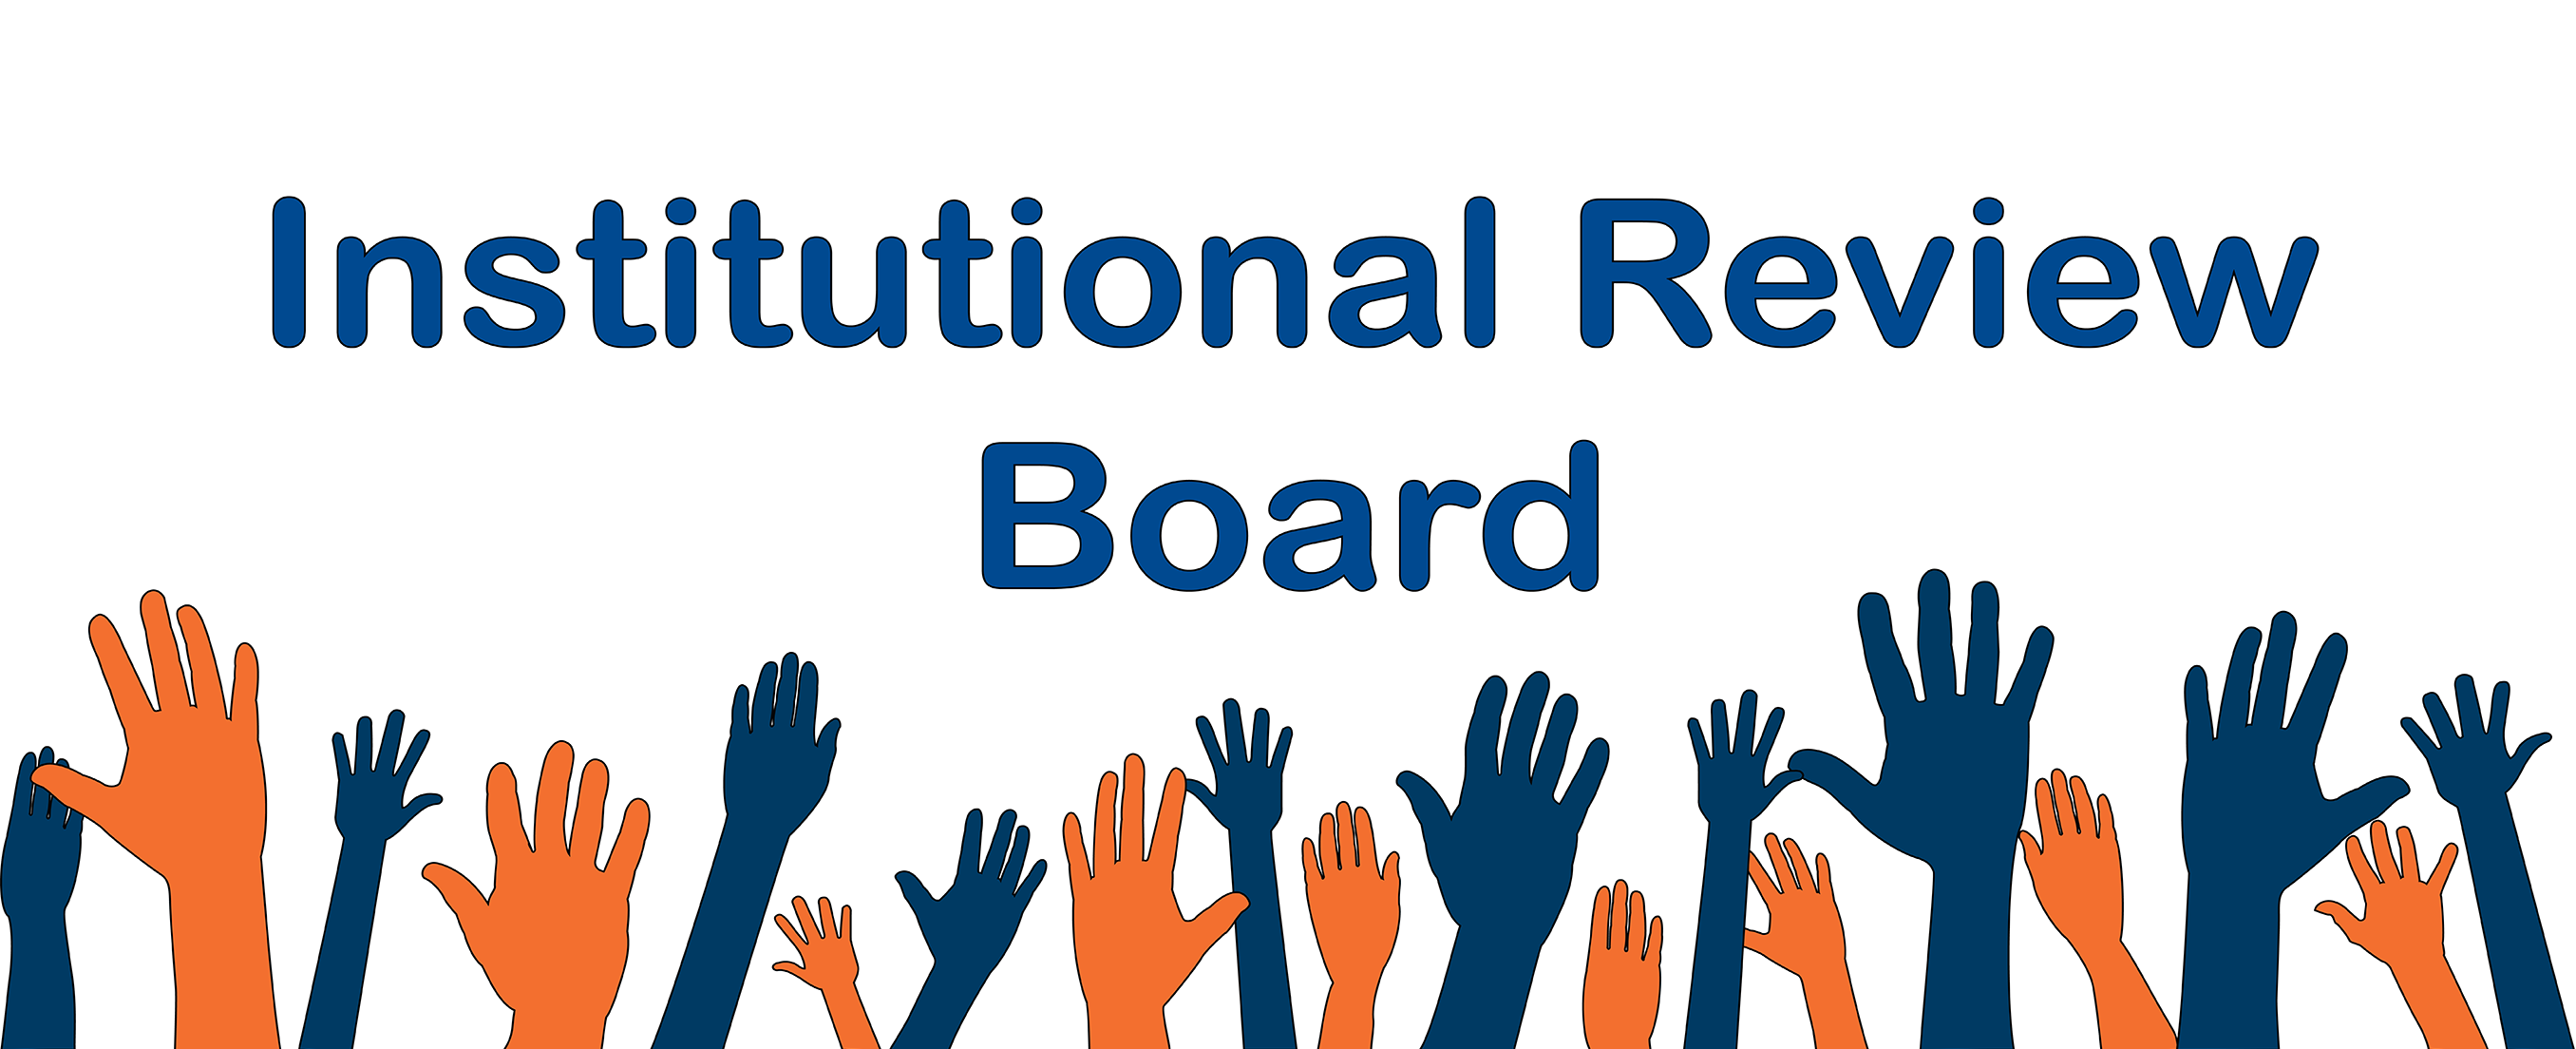 irb institutional review board human subjects research